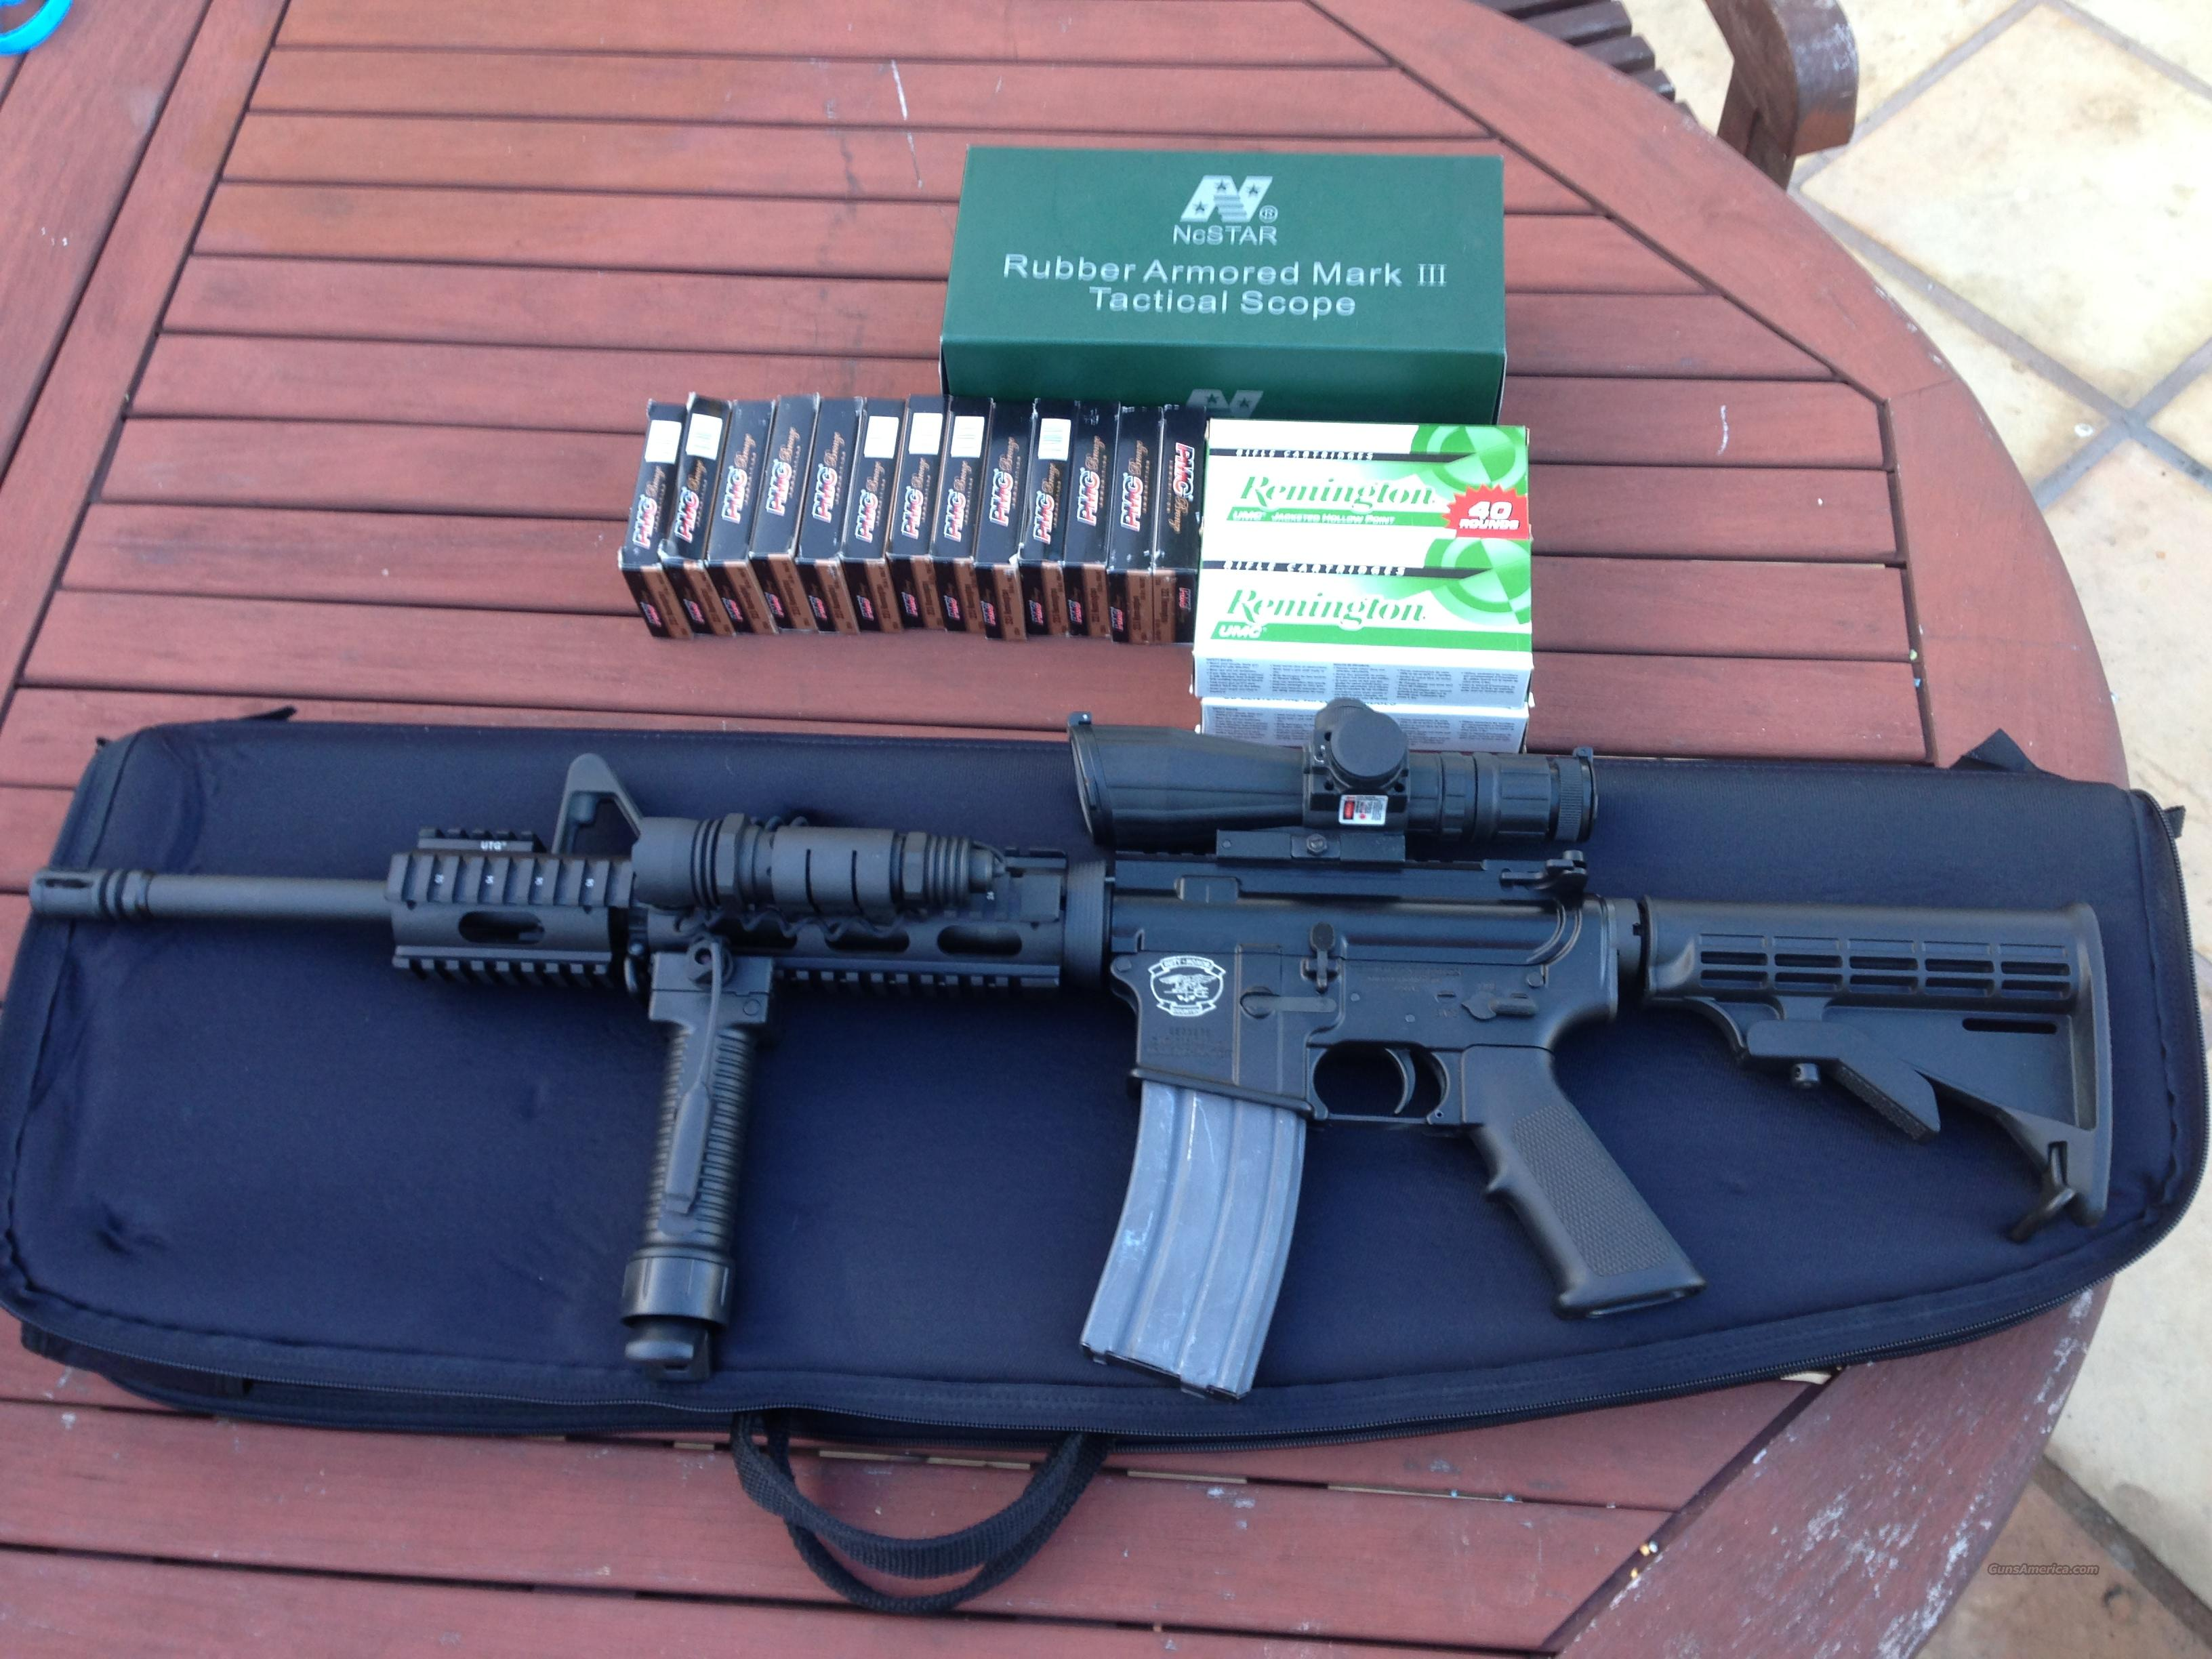 AR-15 .223 Tactical w/scope, red dot, light with sensor  Guns > Rifles > AR-15 Rifles - Small Manufacturers > Complete Rifle